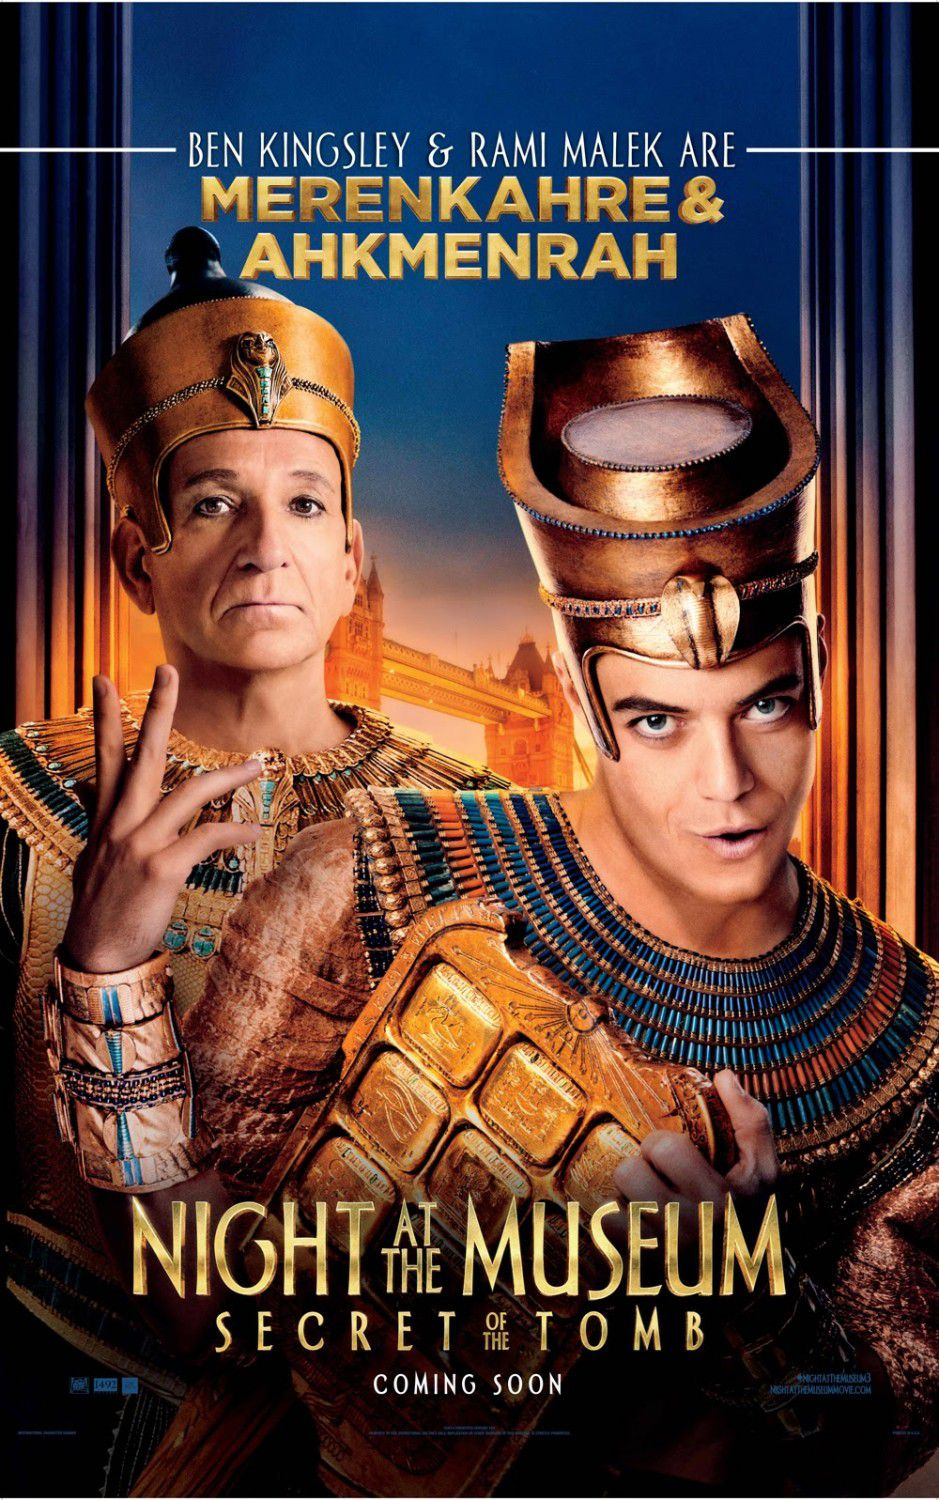 Una Notte al Museo 3 - Night at the Museum 3 - Secret of the Tomb - poster - Merenkahre (Ben Kingsley) and Ahkmenrah (Rami Malek Are)